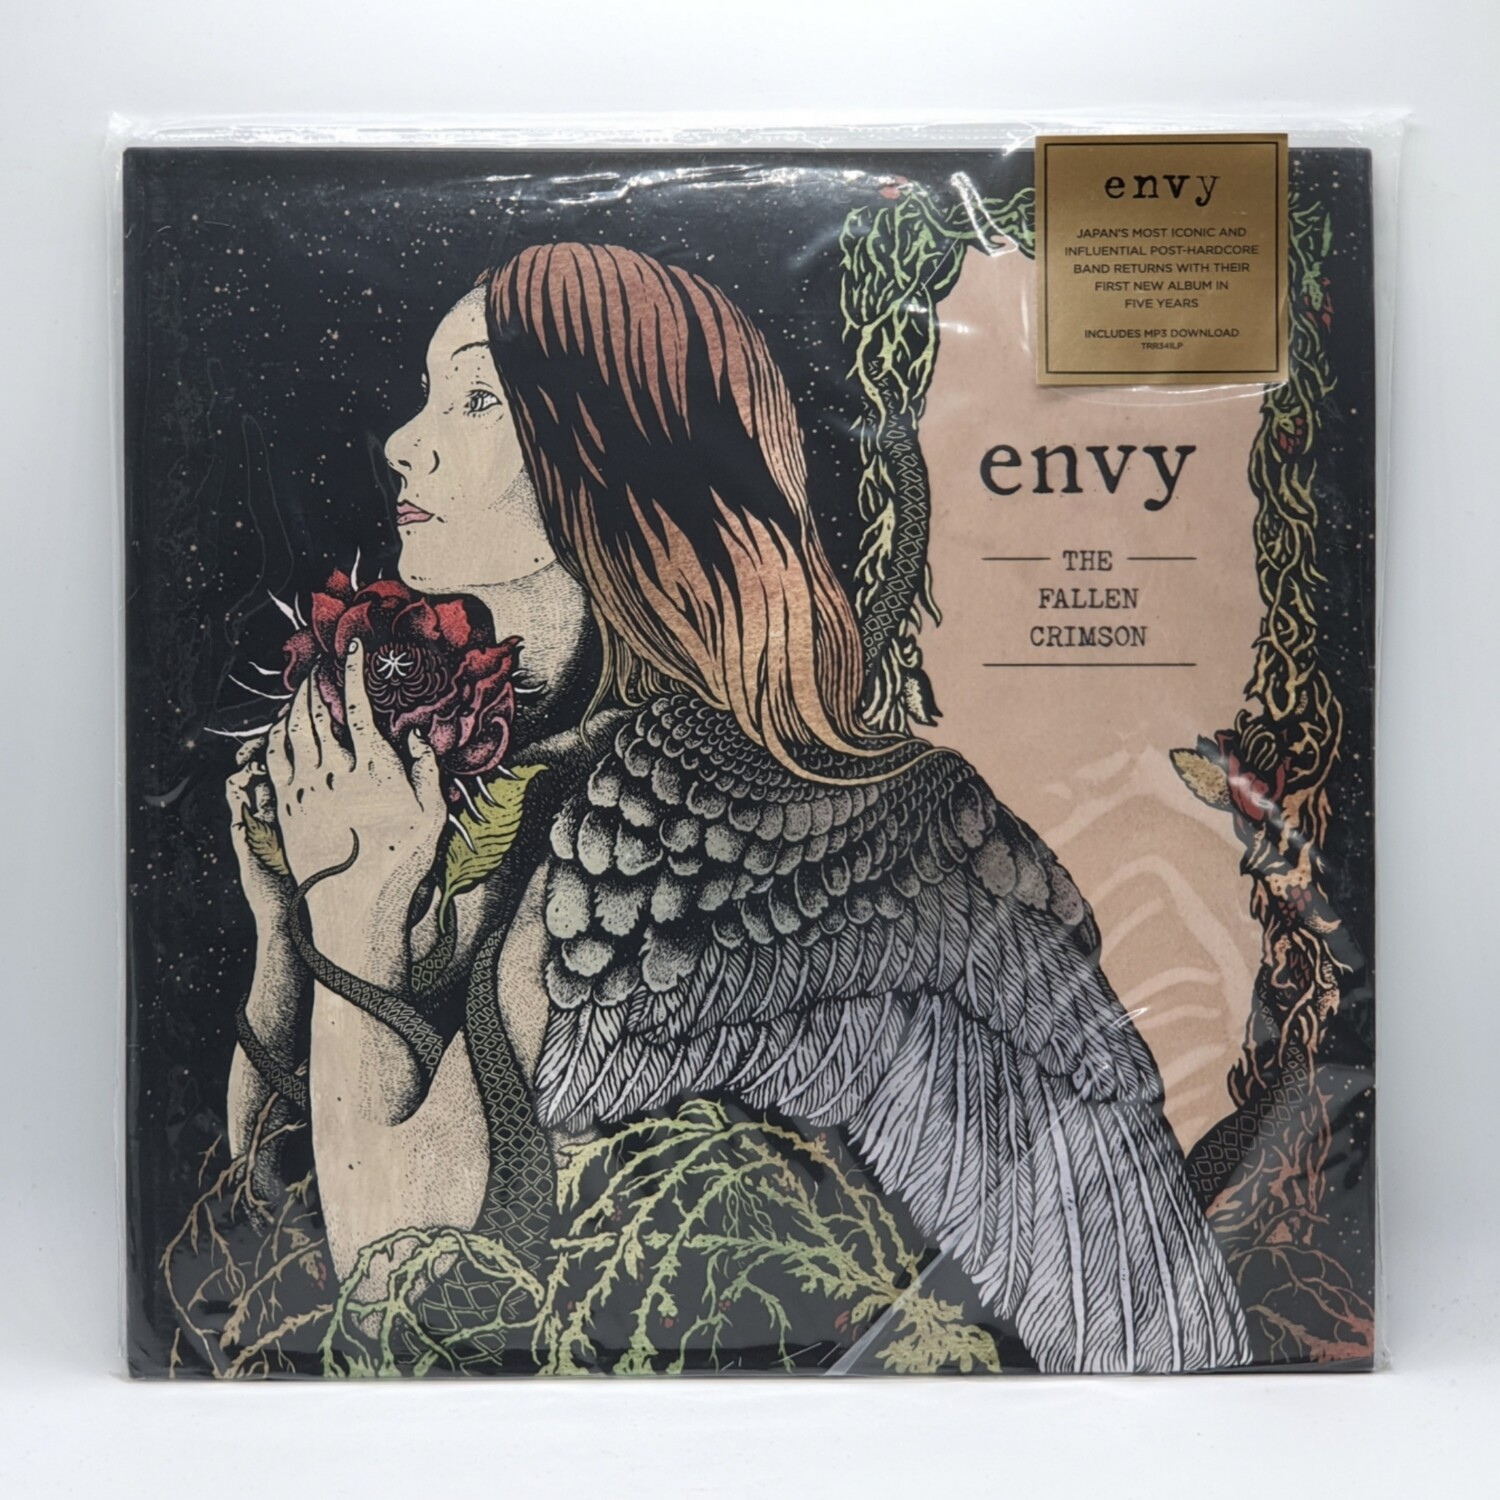 ENVY -THE FALLEN CRIMSON- LP